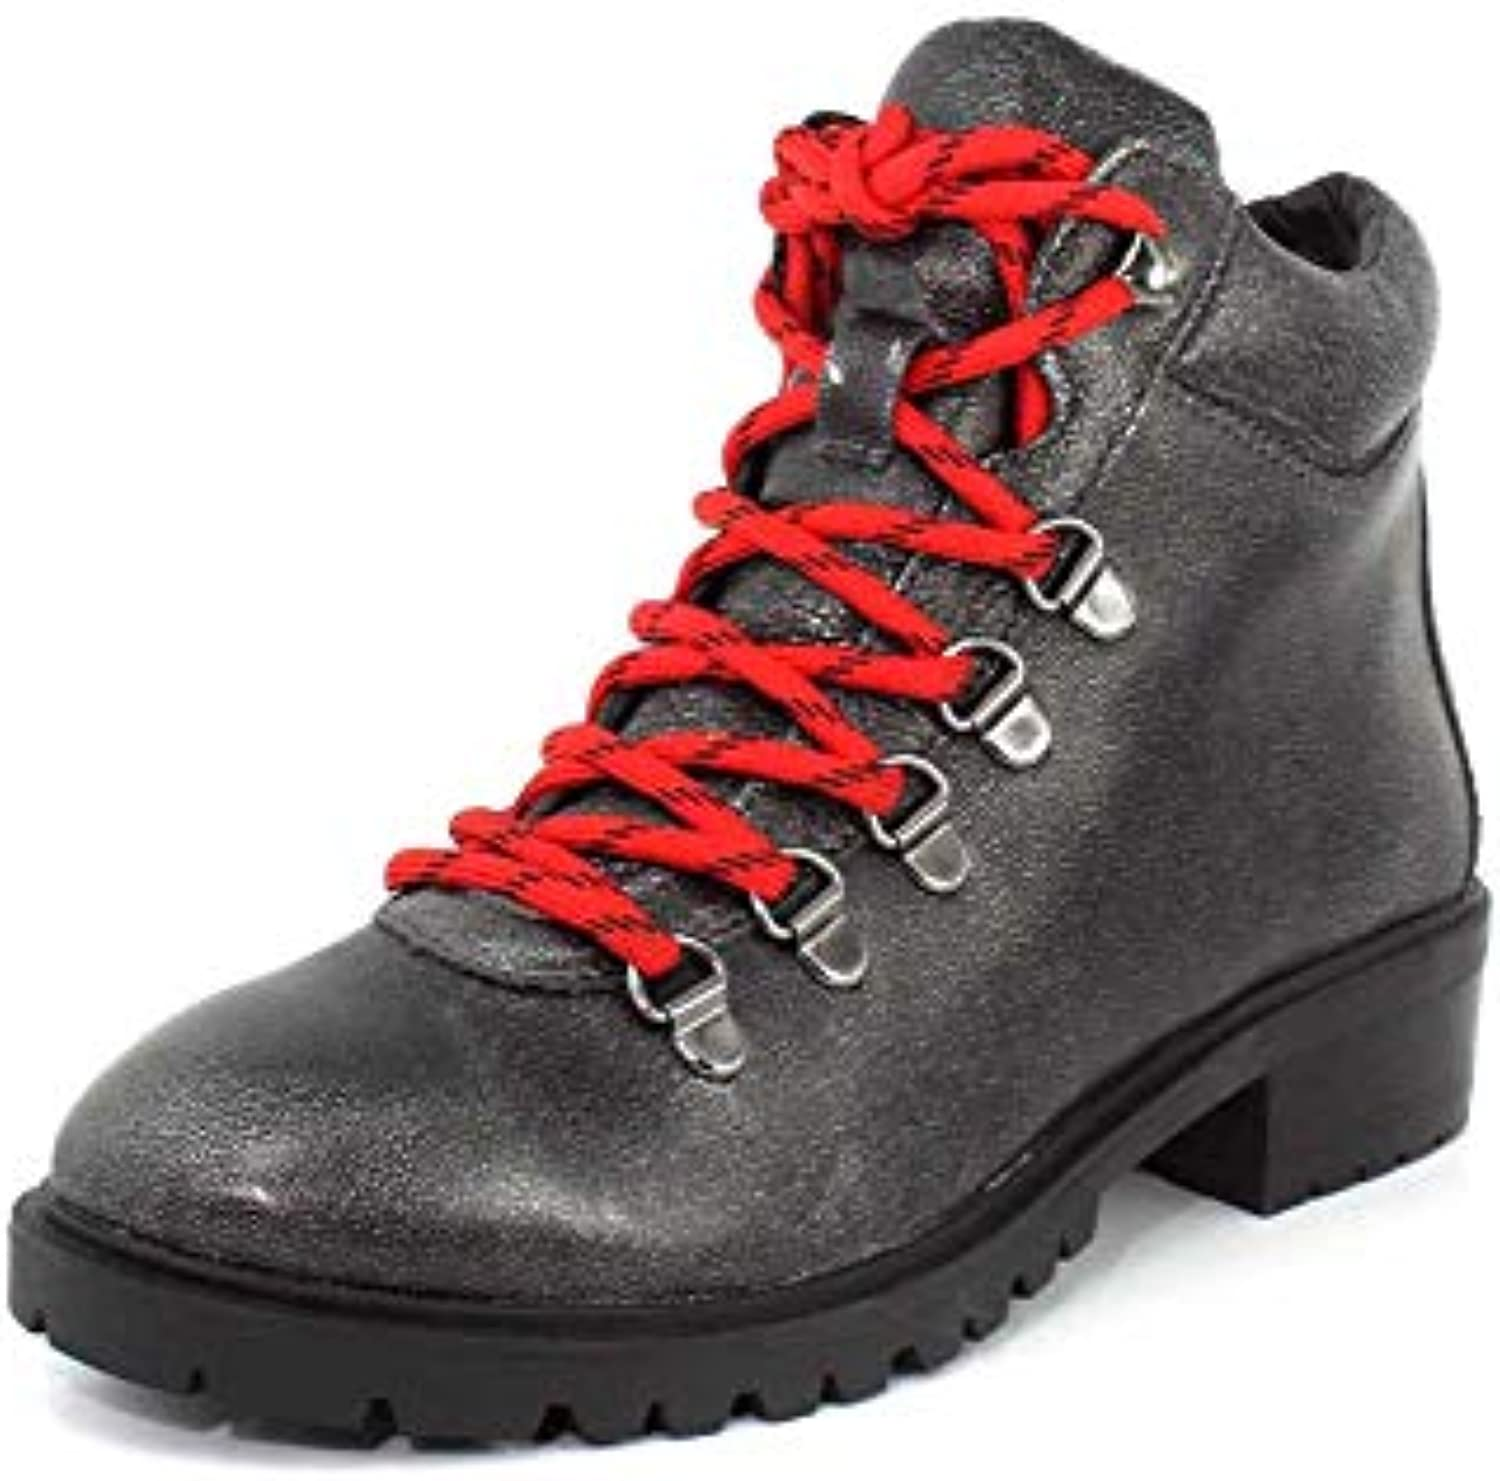 Steve Madden Madden Madden Wouomo Lora Pewter Leather 7 M US M | Outlet Online  | Gentiluomo/Signora Scarpa  04482c